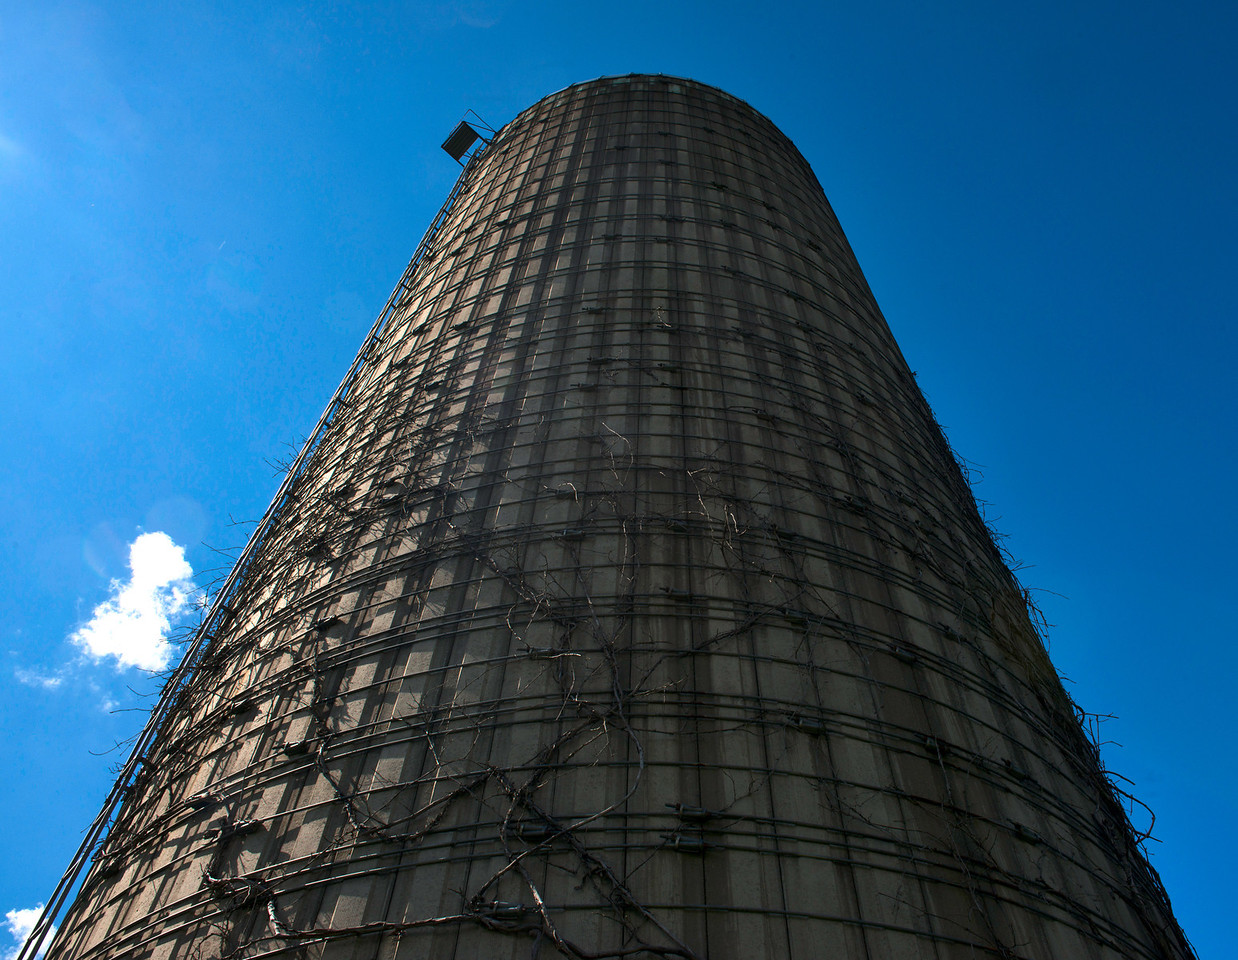 August 3 - August 3 - Silo at the Great Swamp Conservancy a bit north of Canastota, NY